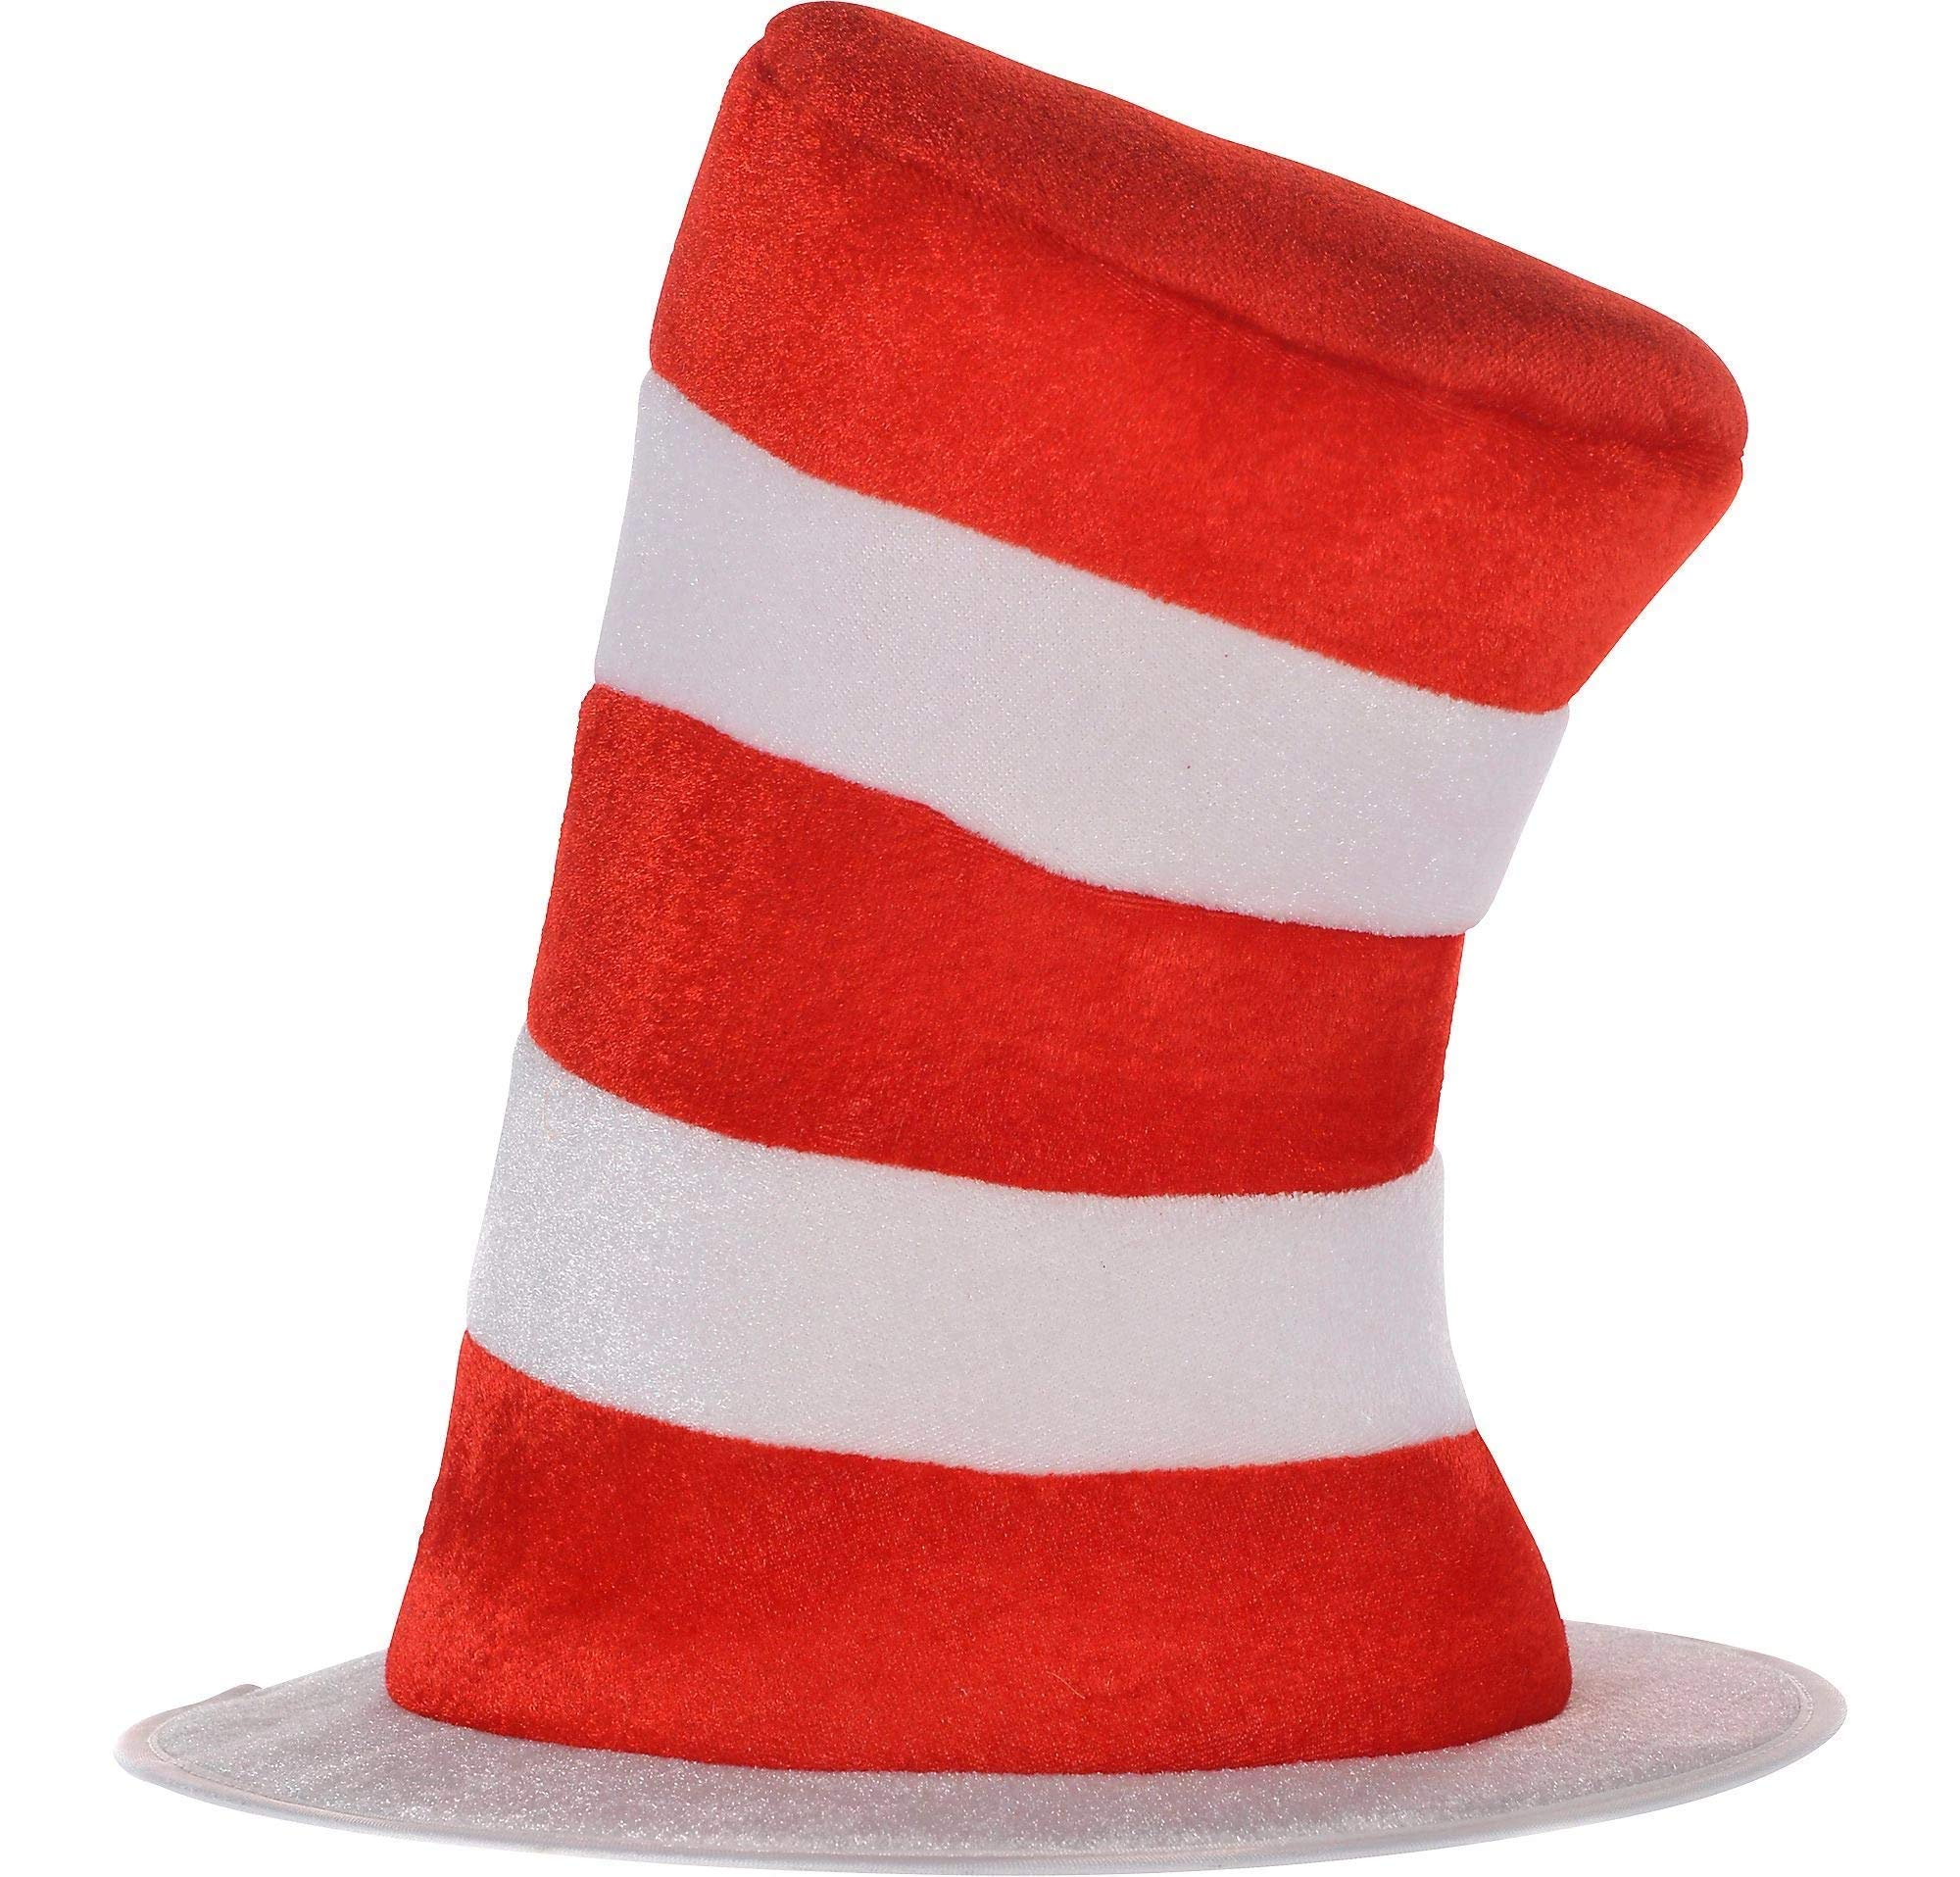 Costumes USA Dr. Seuss Cat in the Hat Top Hat for Kids, Halloween Costume Accessories, One Size by Costumes USA